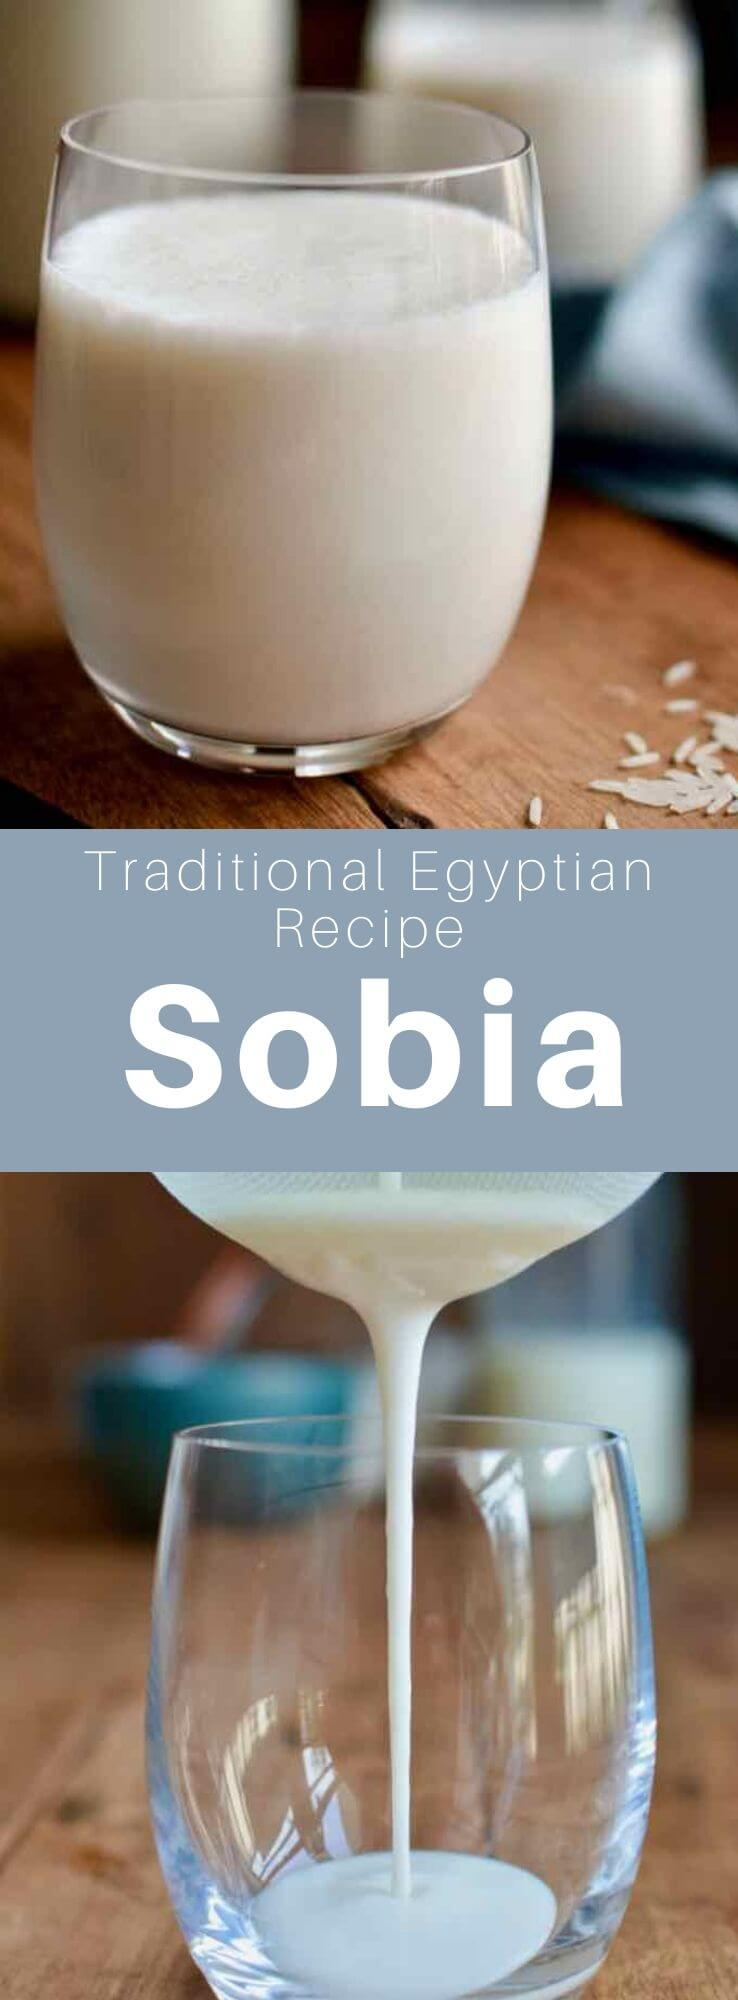 Sobia is a sweet, creamy Egyptian rice and coconut drink considered the most popular drink during the holy month of Ramadan. #Egypt #EgyptianCuisine #EgyptianFood #EgyptianRecipe #WorldCuisine #196flavors